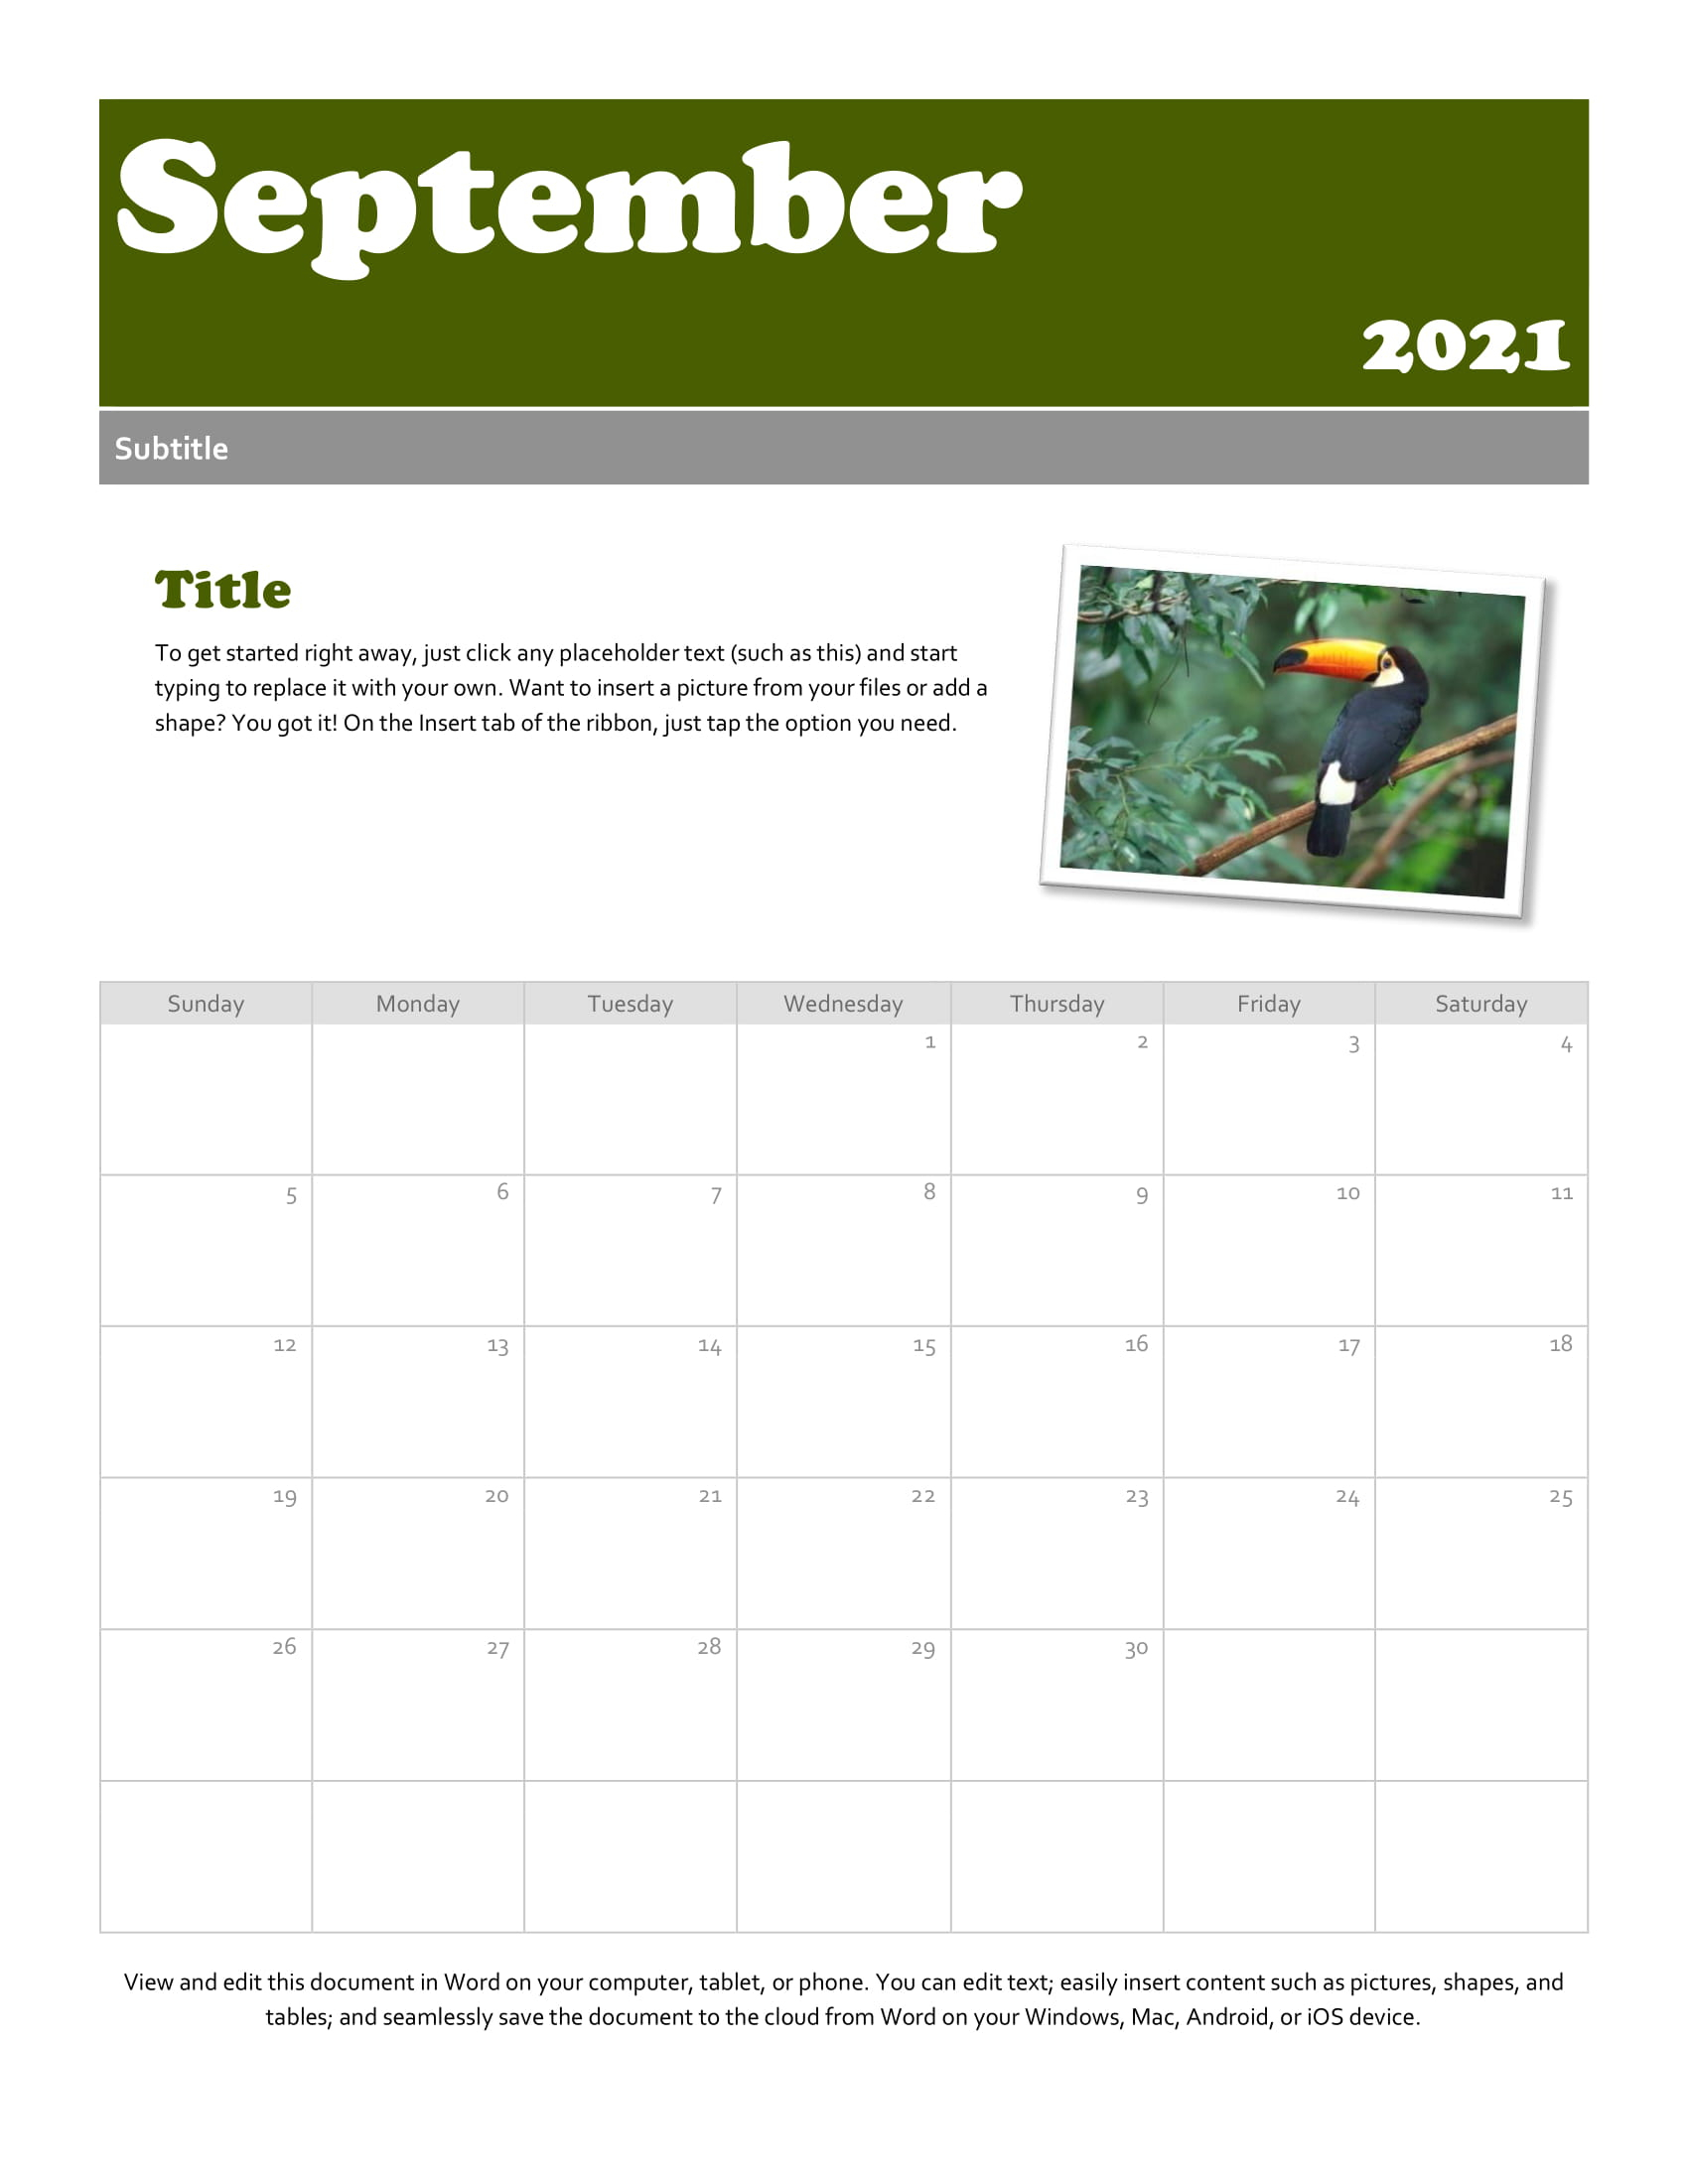 Print A Calendar For September 2021 - Printable Calendar